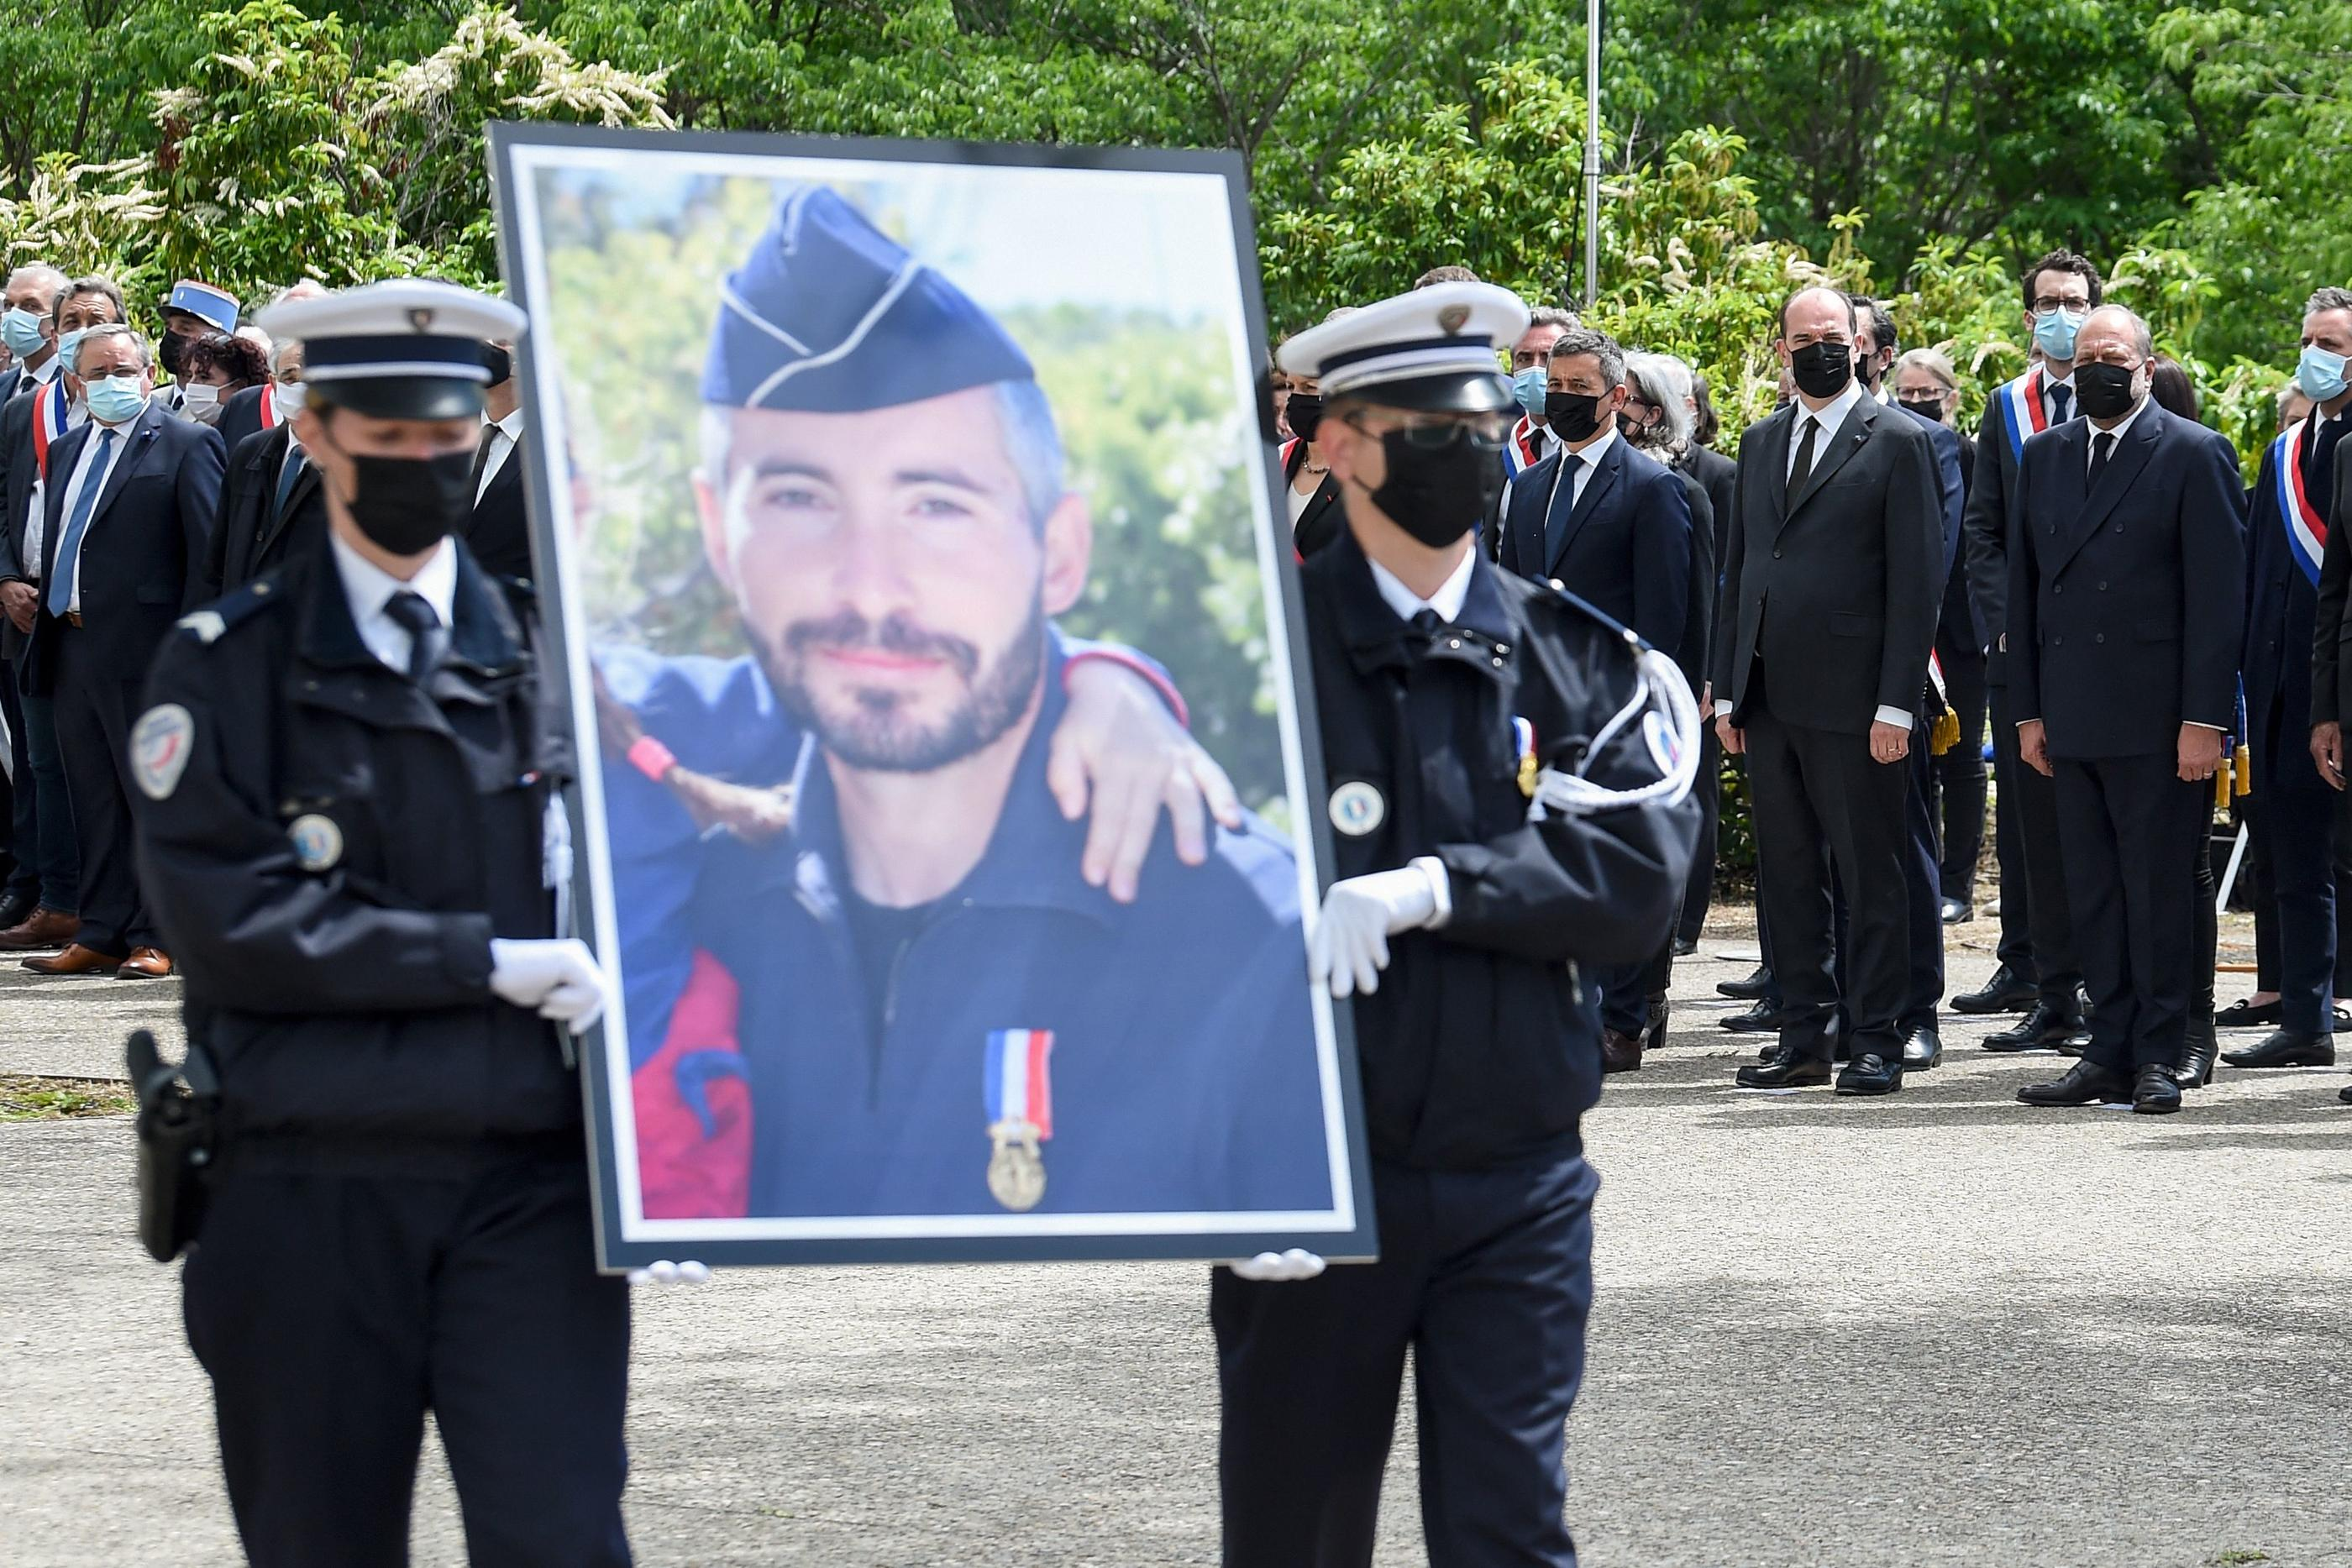 Policeman killed in Avignon: the landlord of the alleged murderer indicted and imprisoned - archyde